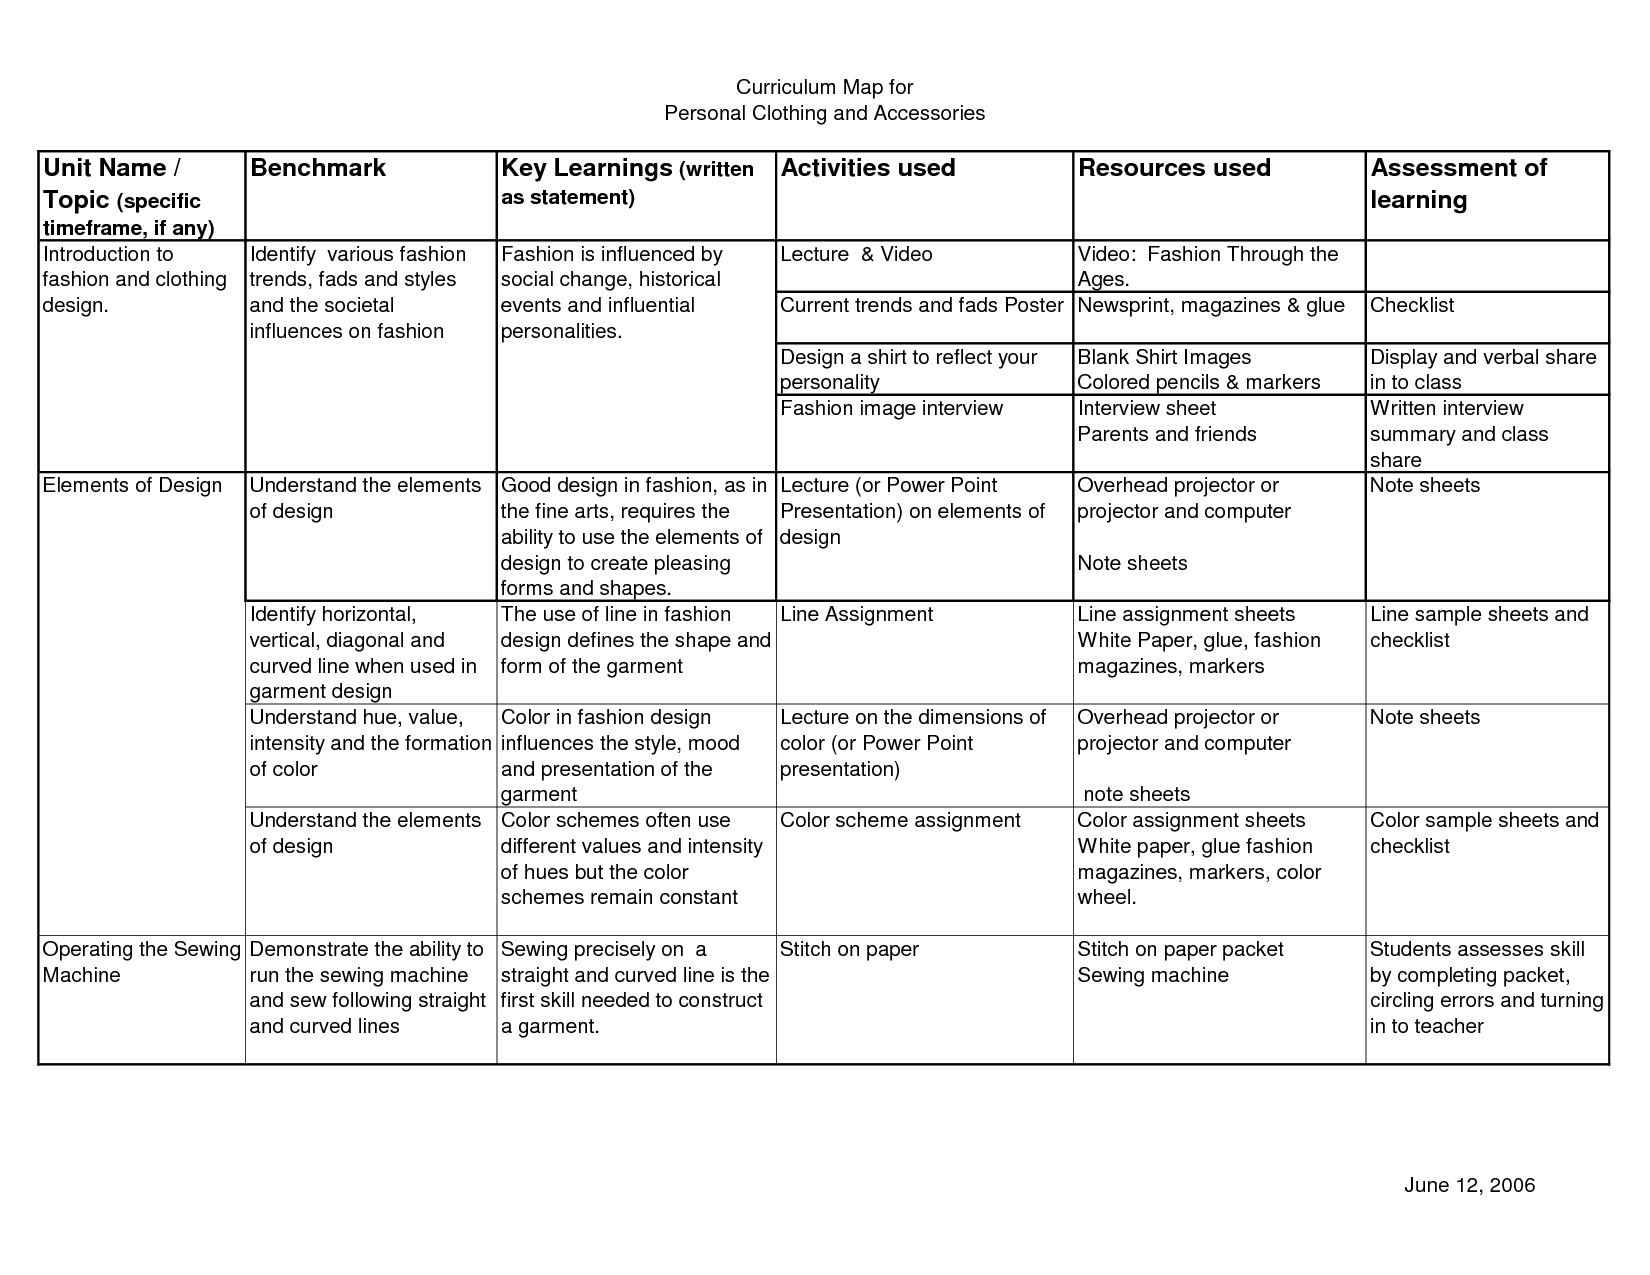 Blank Color Wheel Worksheets Curriculum   Curriculum mapping [ 1275 x 1650 Pixel ]